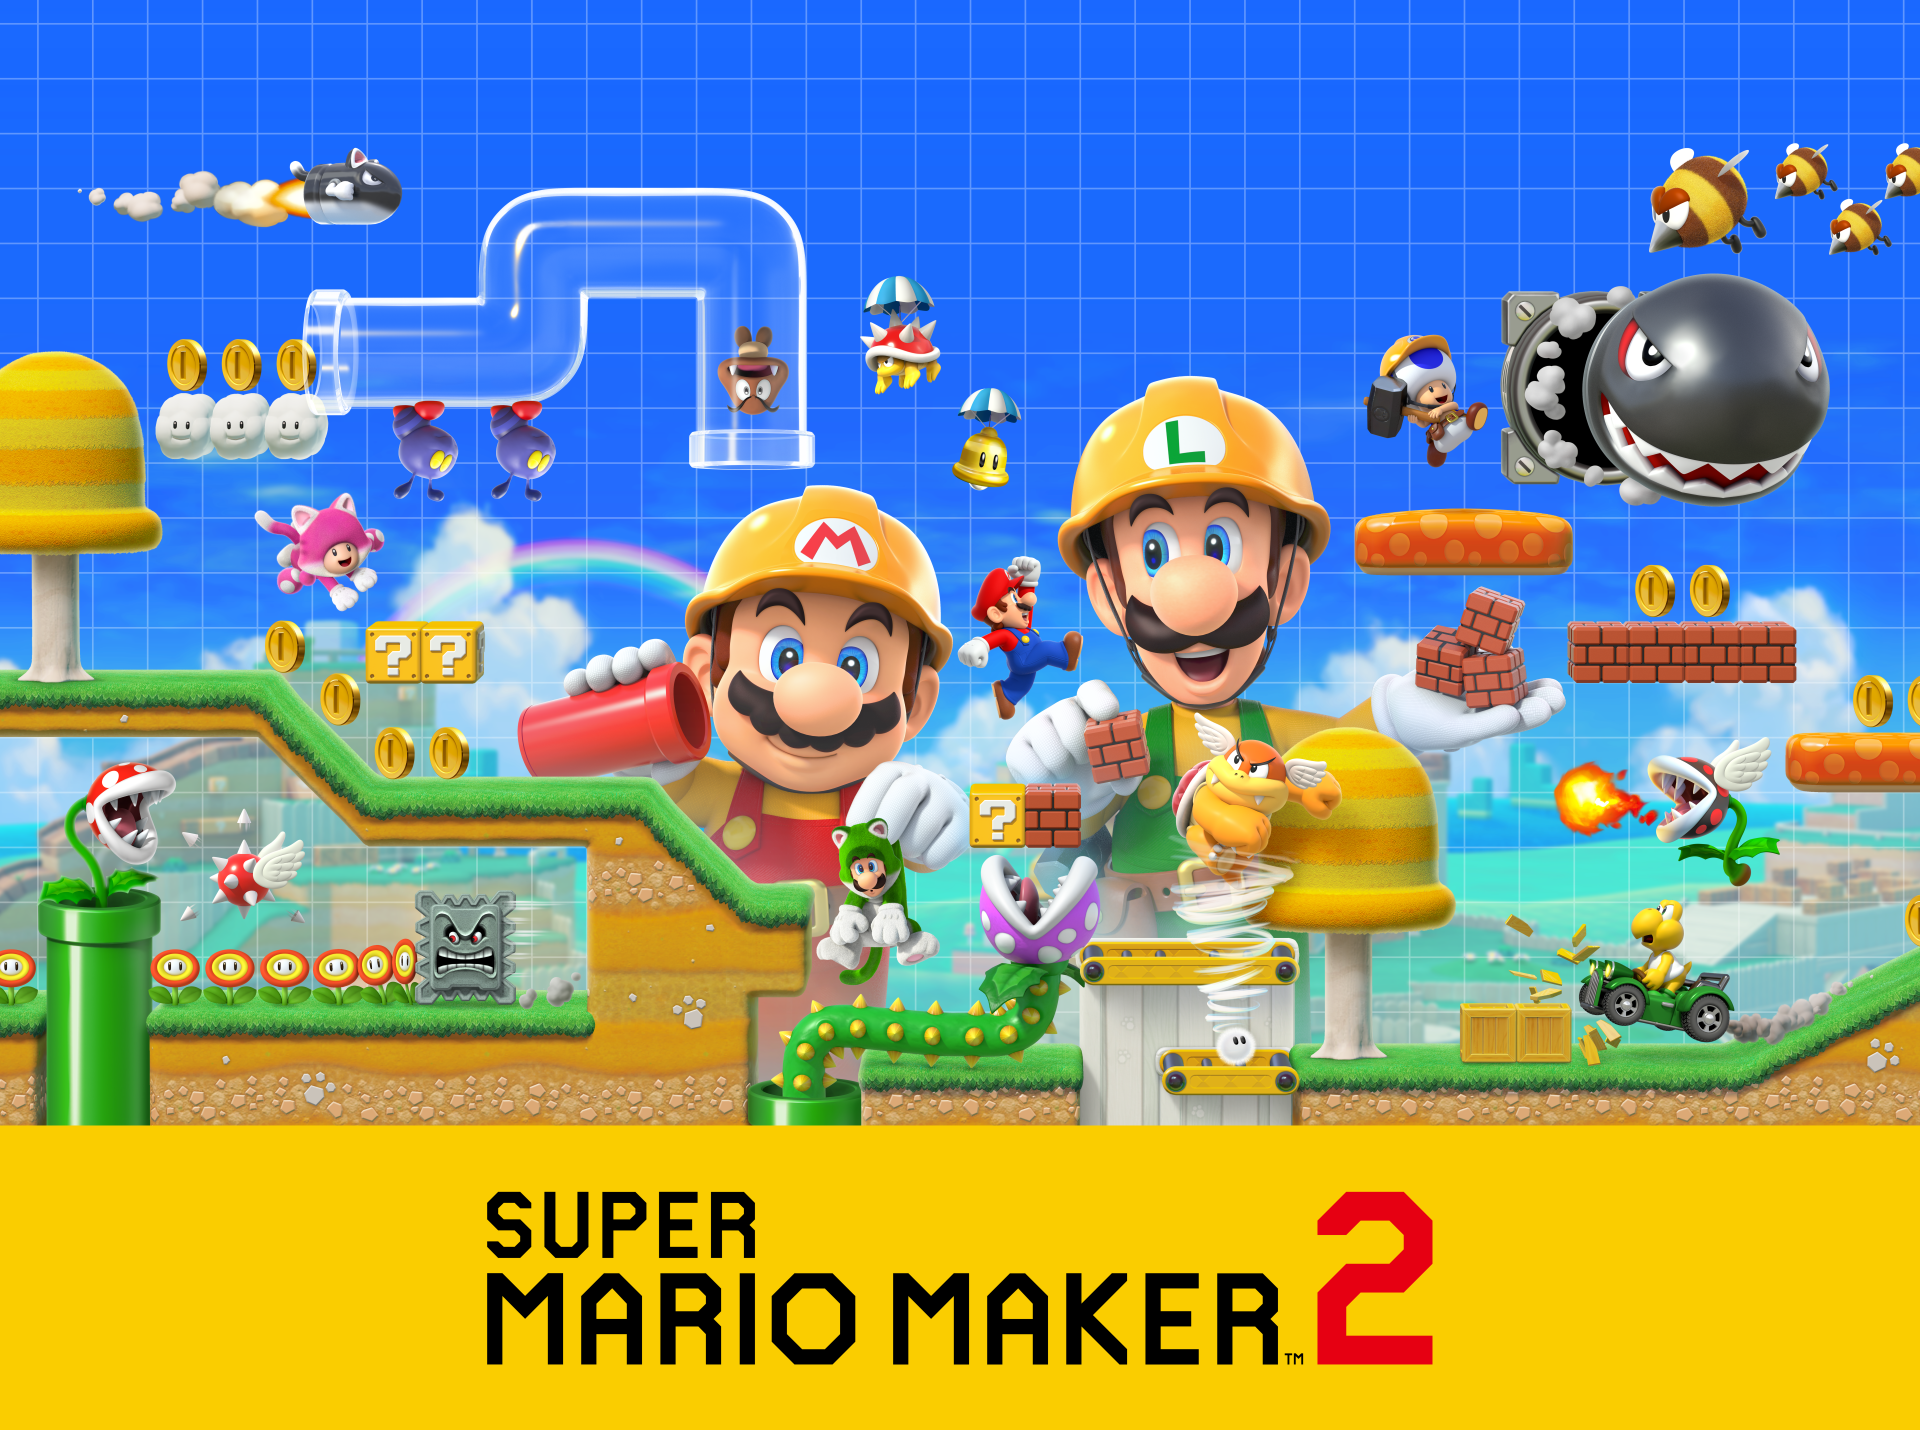 1 Super Mario Maker 2 Hd Wallpapers Background Images